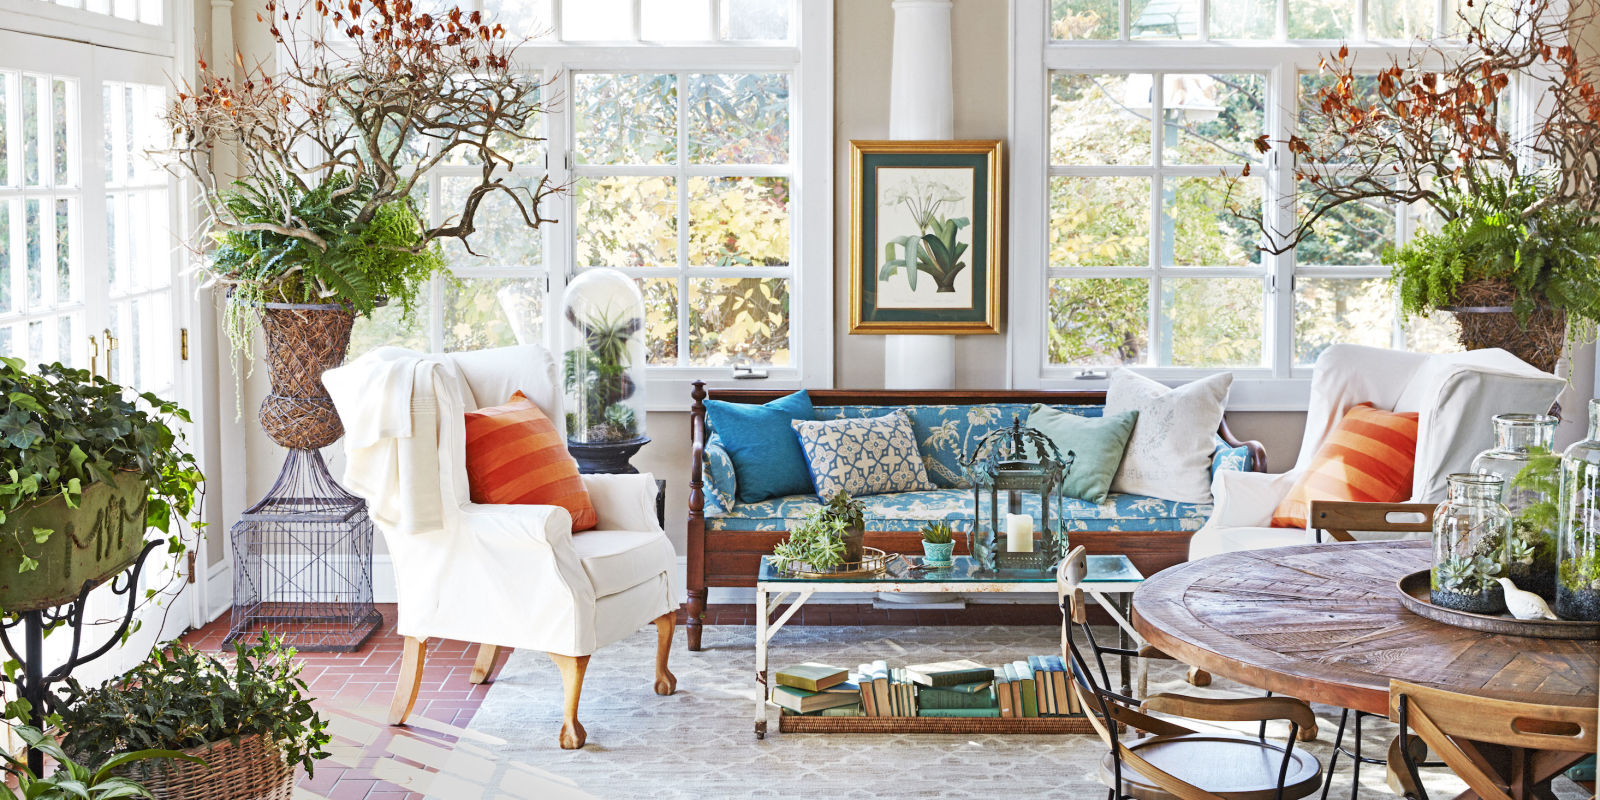 10 Sunroom Decorating Ideas